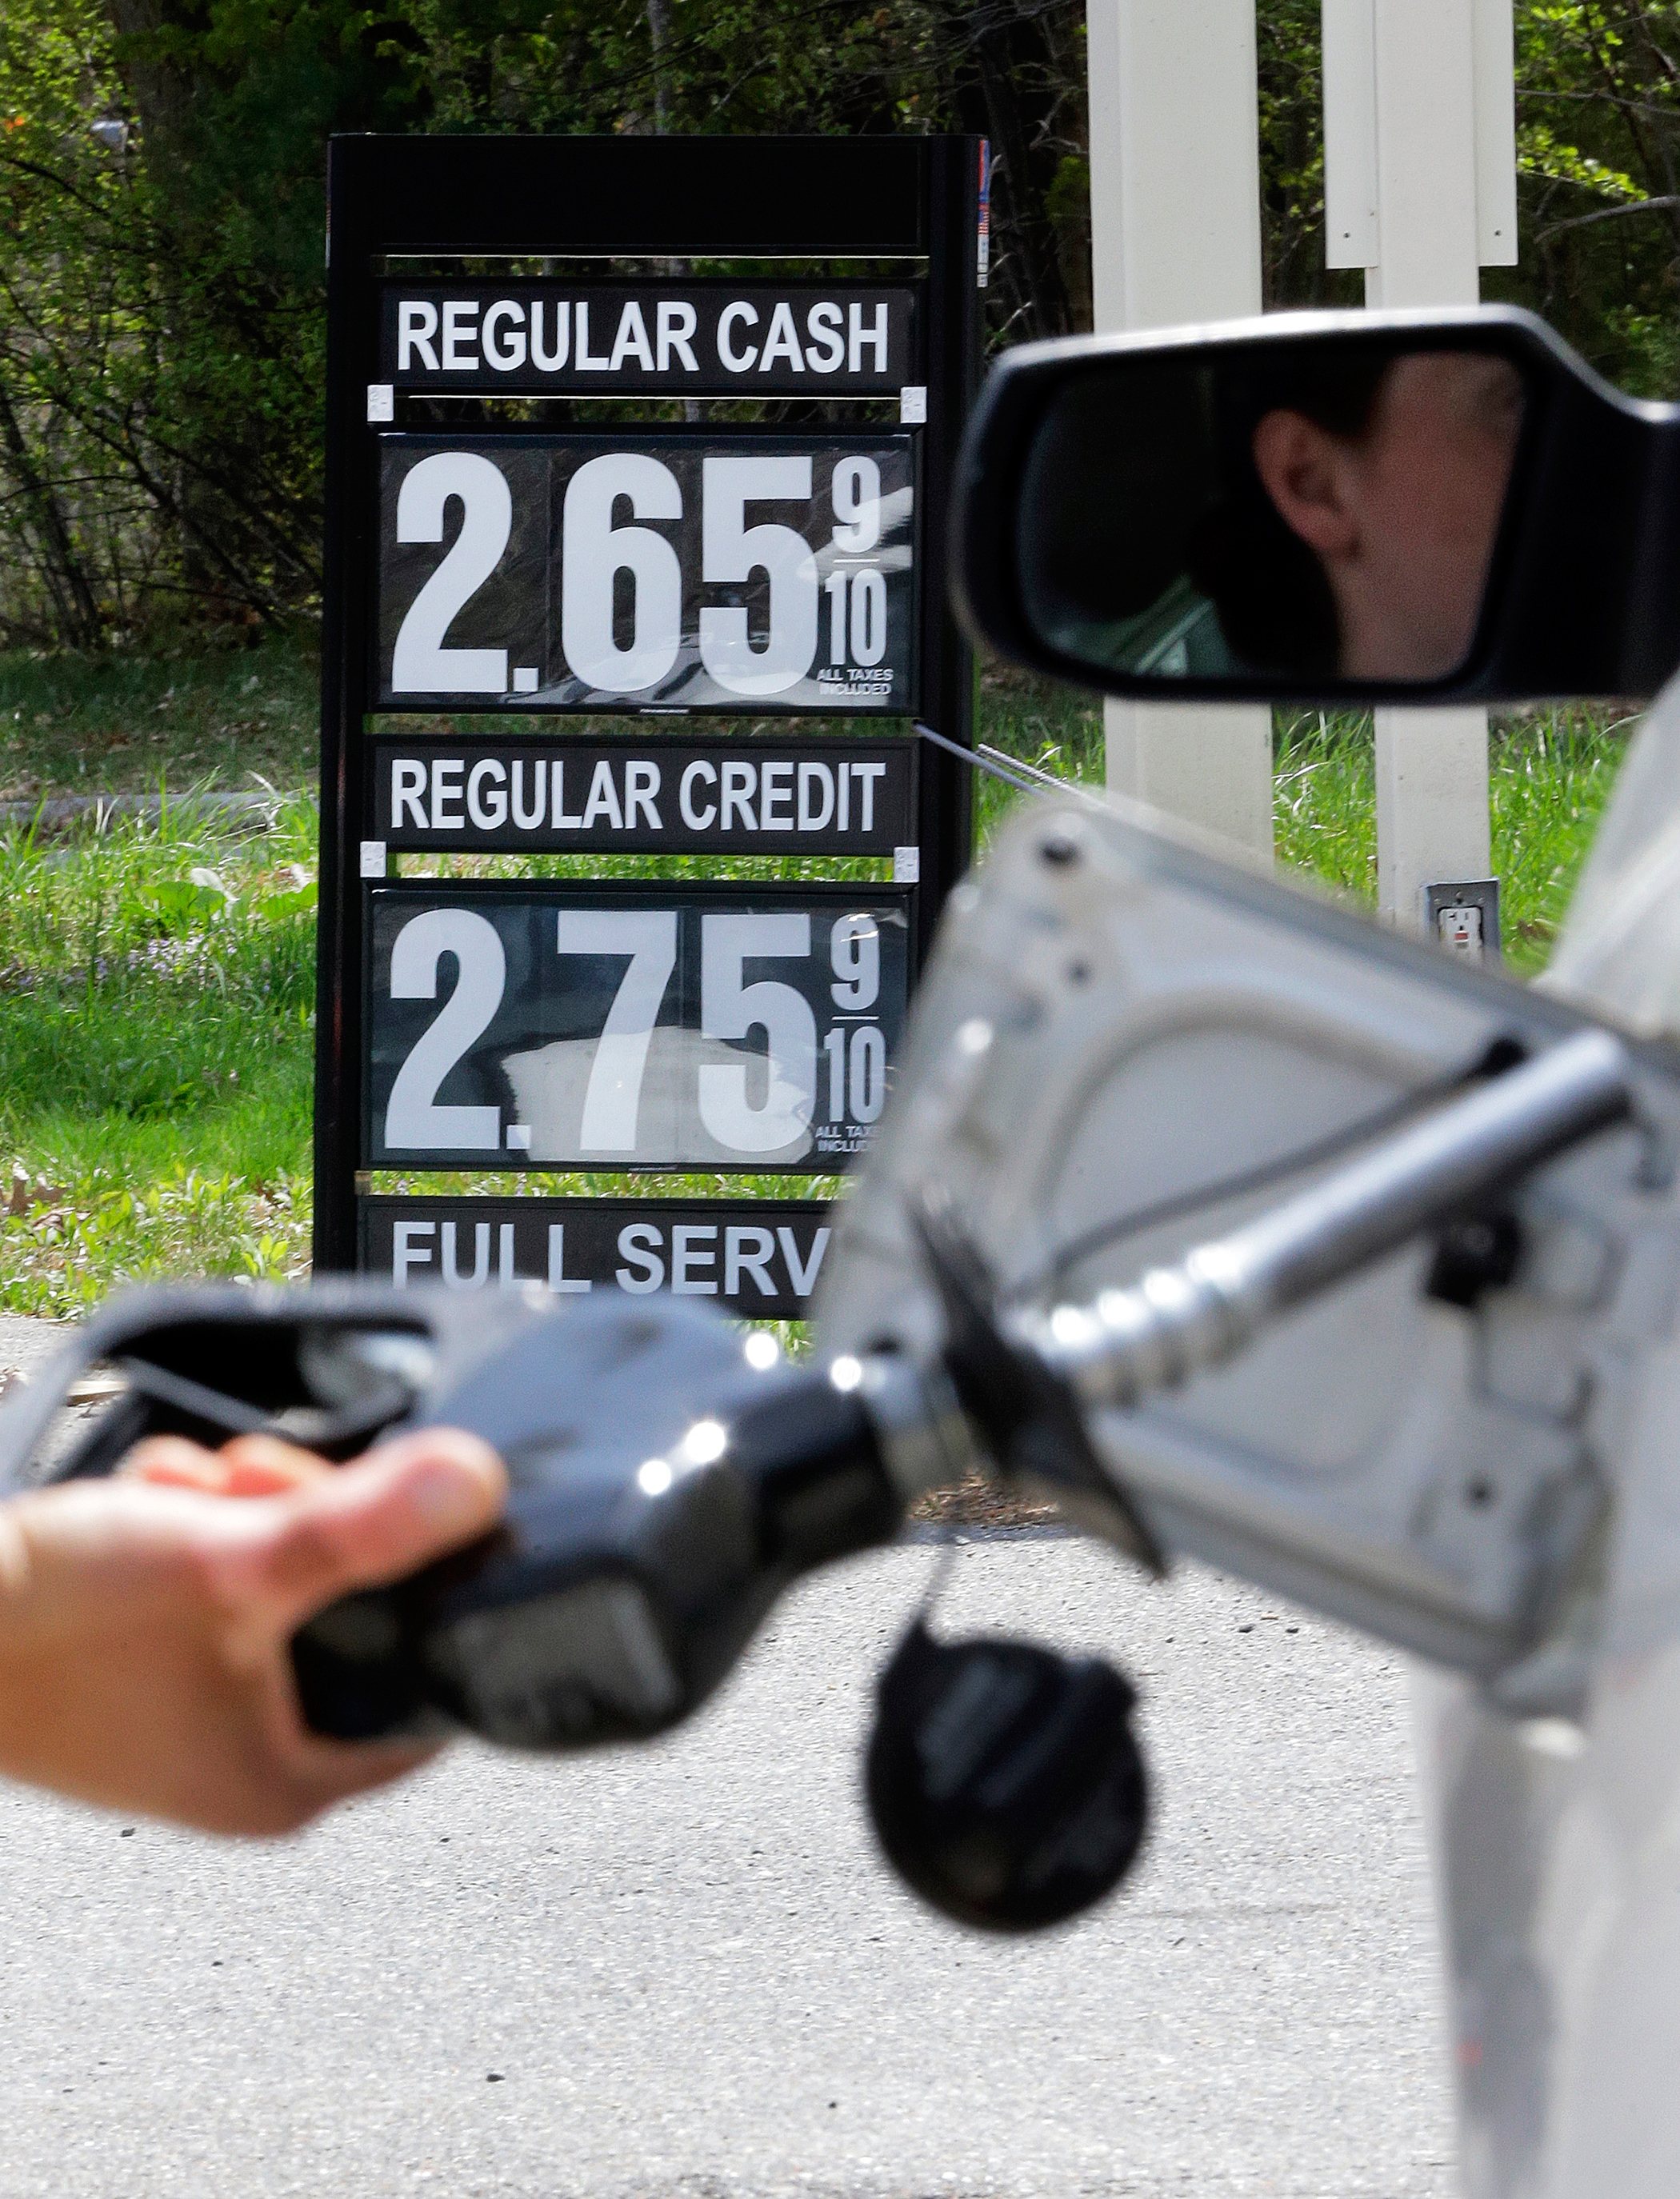 Gas station attendant pumping gas in Andover, Mass., May 8, 2015.